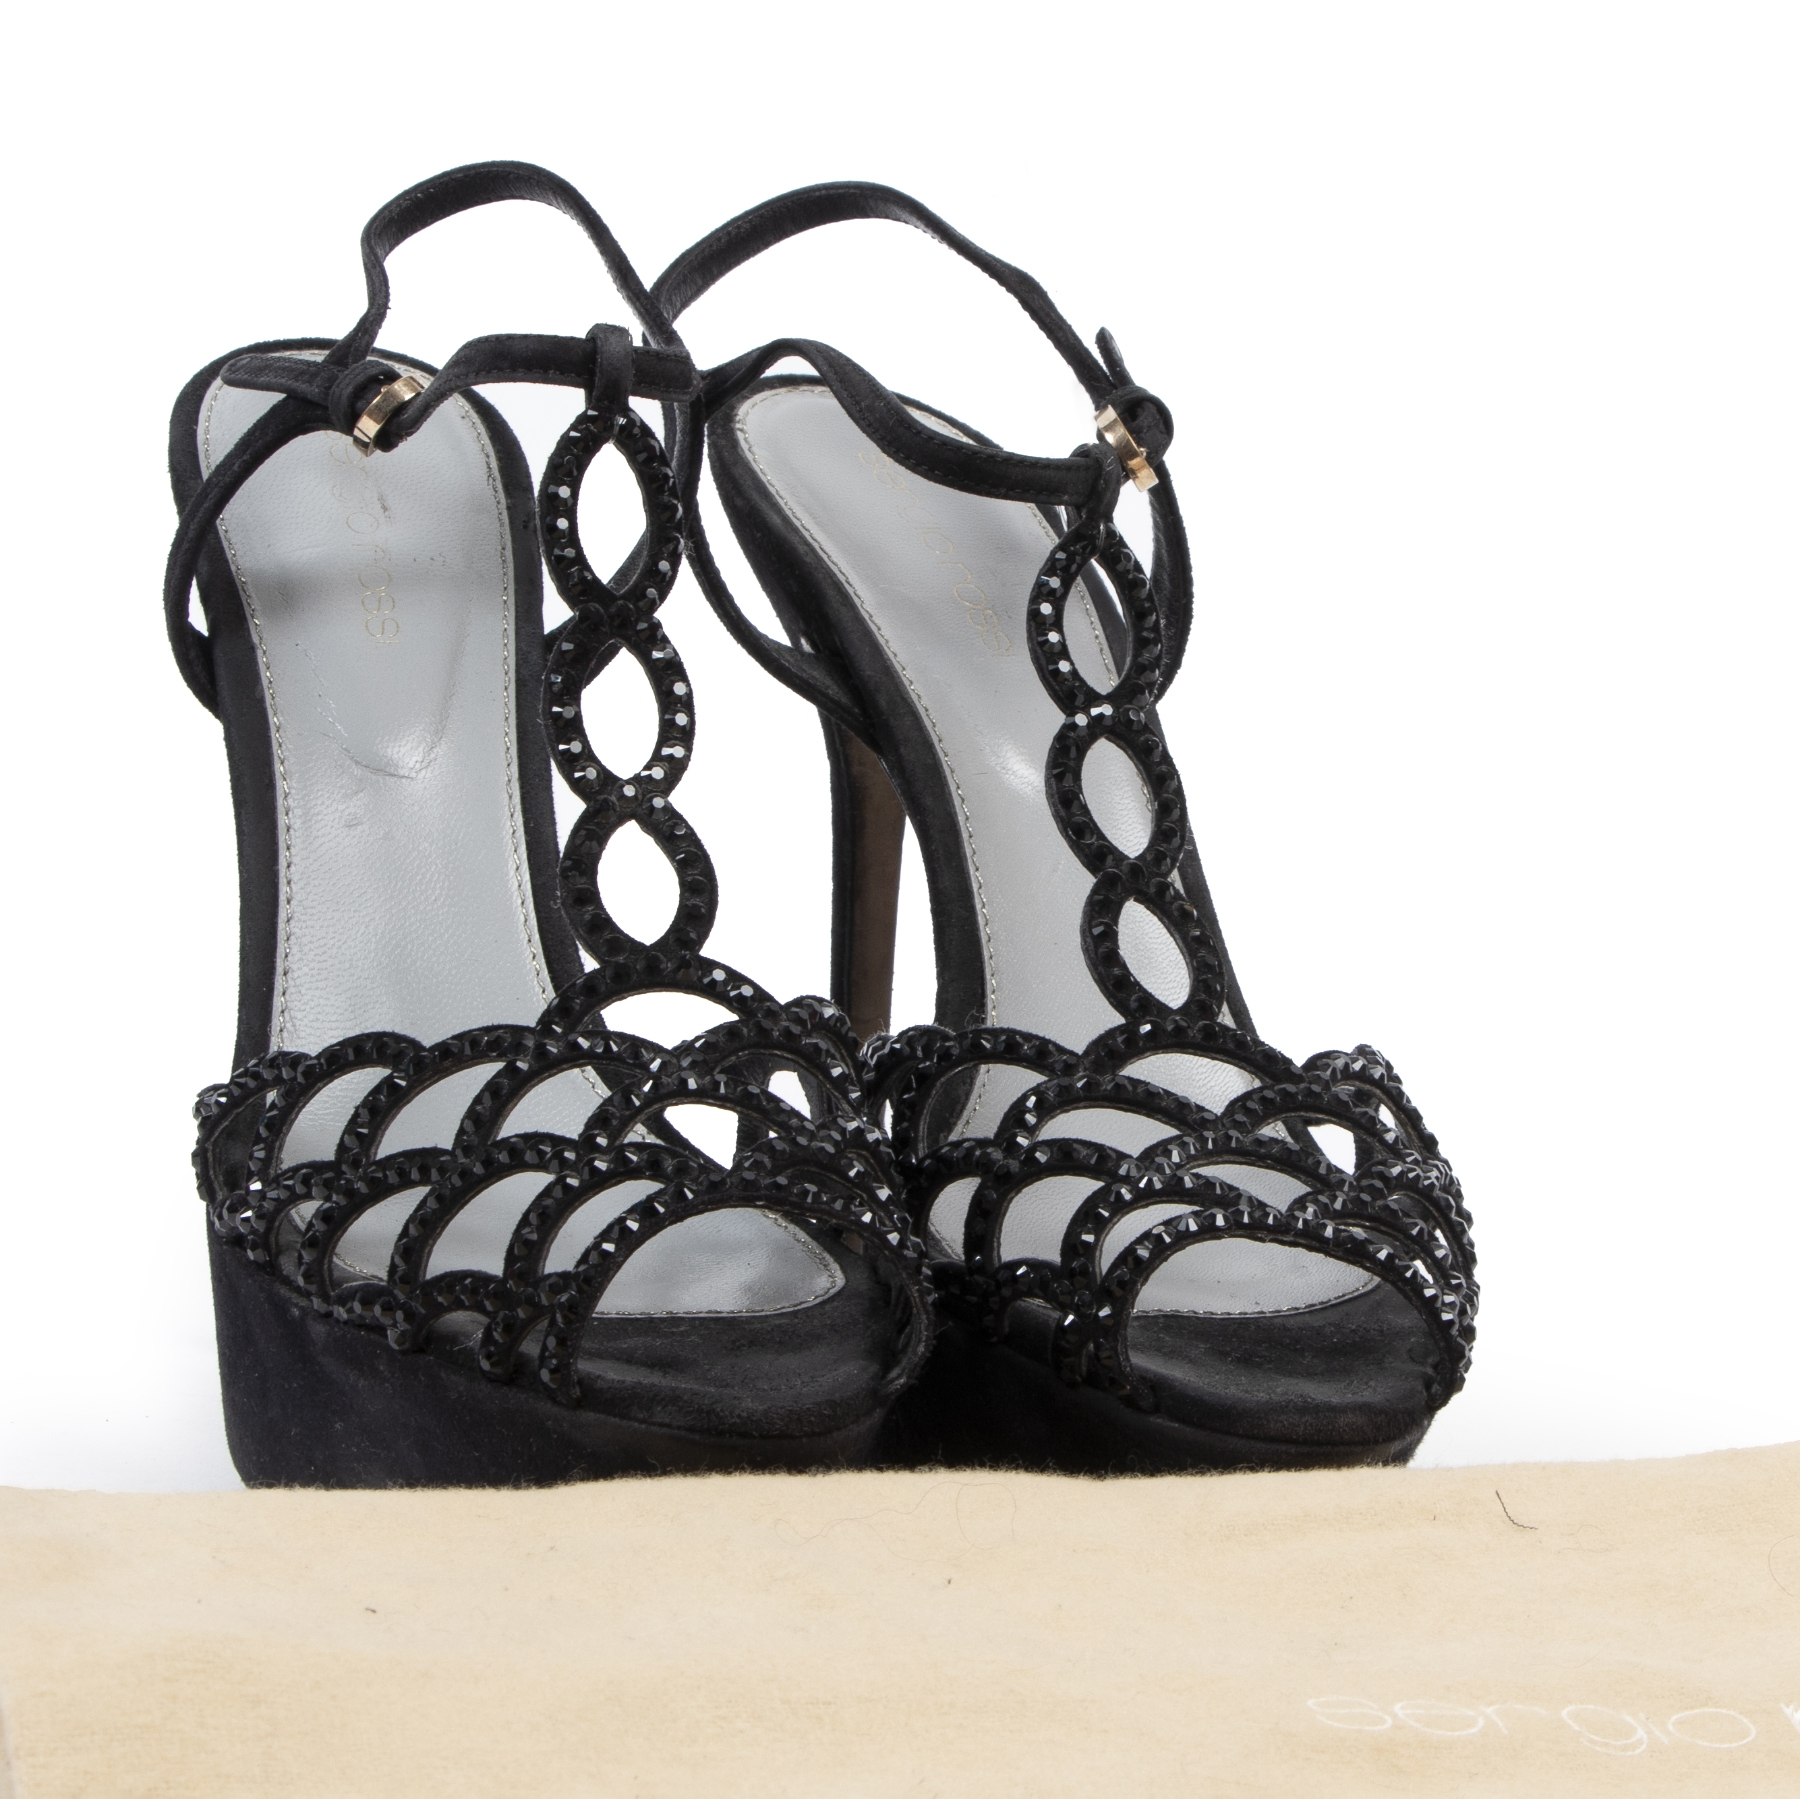 Authentic secondhand Sergio Rossi Black Rhinestone Sandal Heels - Size 39 designer shoes fashion luxury vintage webshop safe secure online shopping